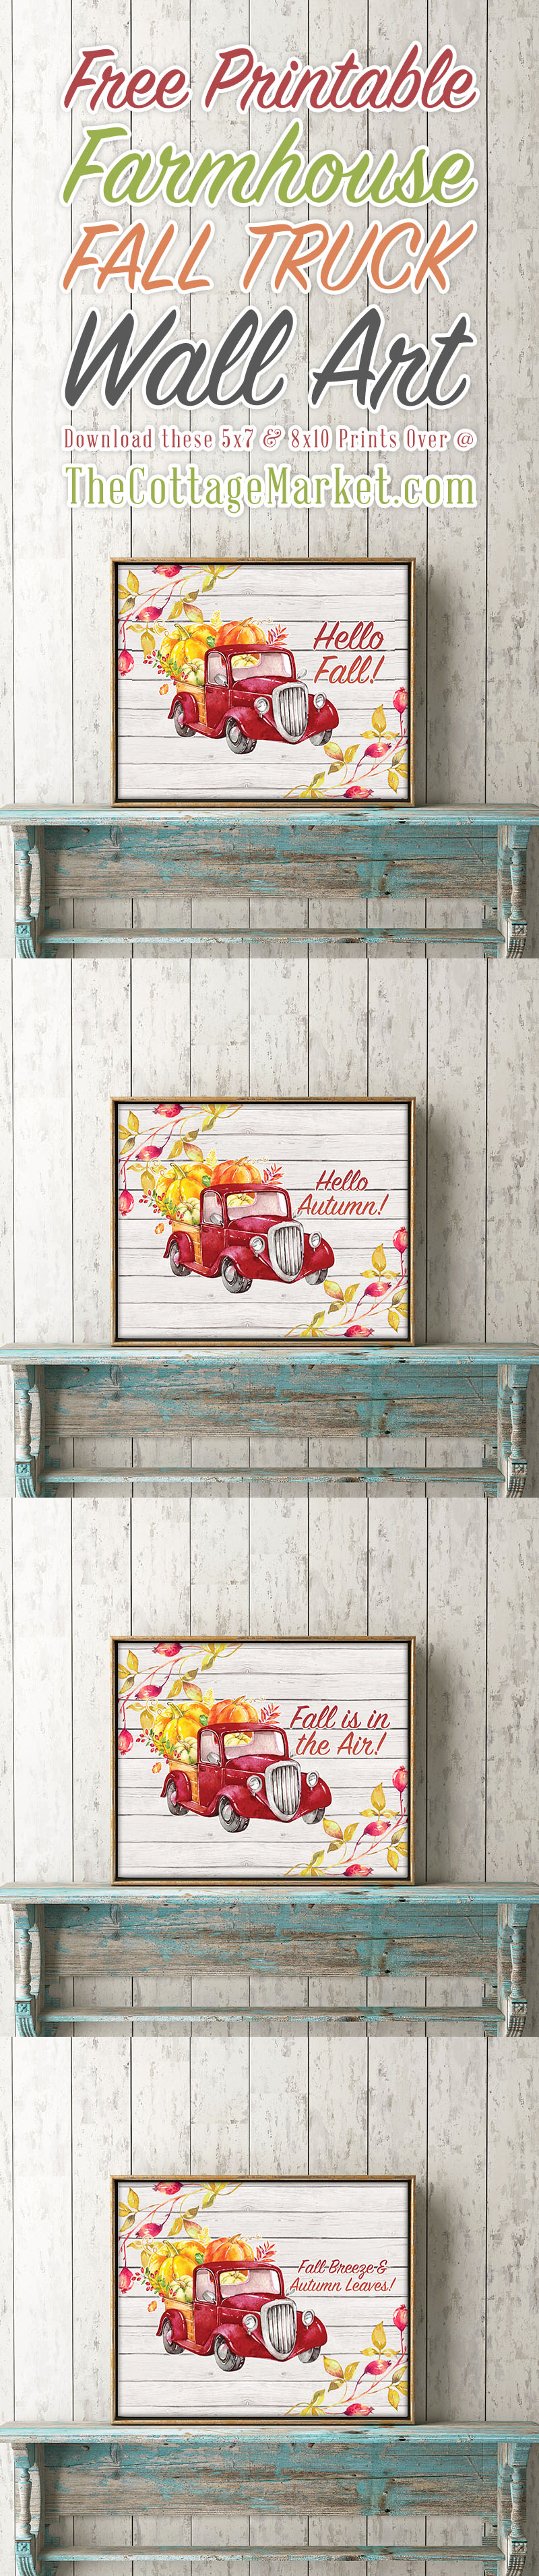 The Best Free Printable Farmhouse Wall Art Prints - The Cottage Market